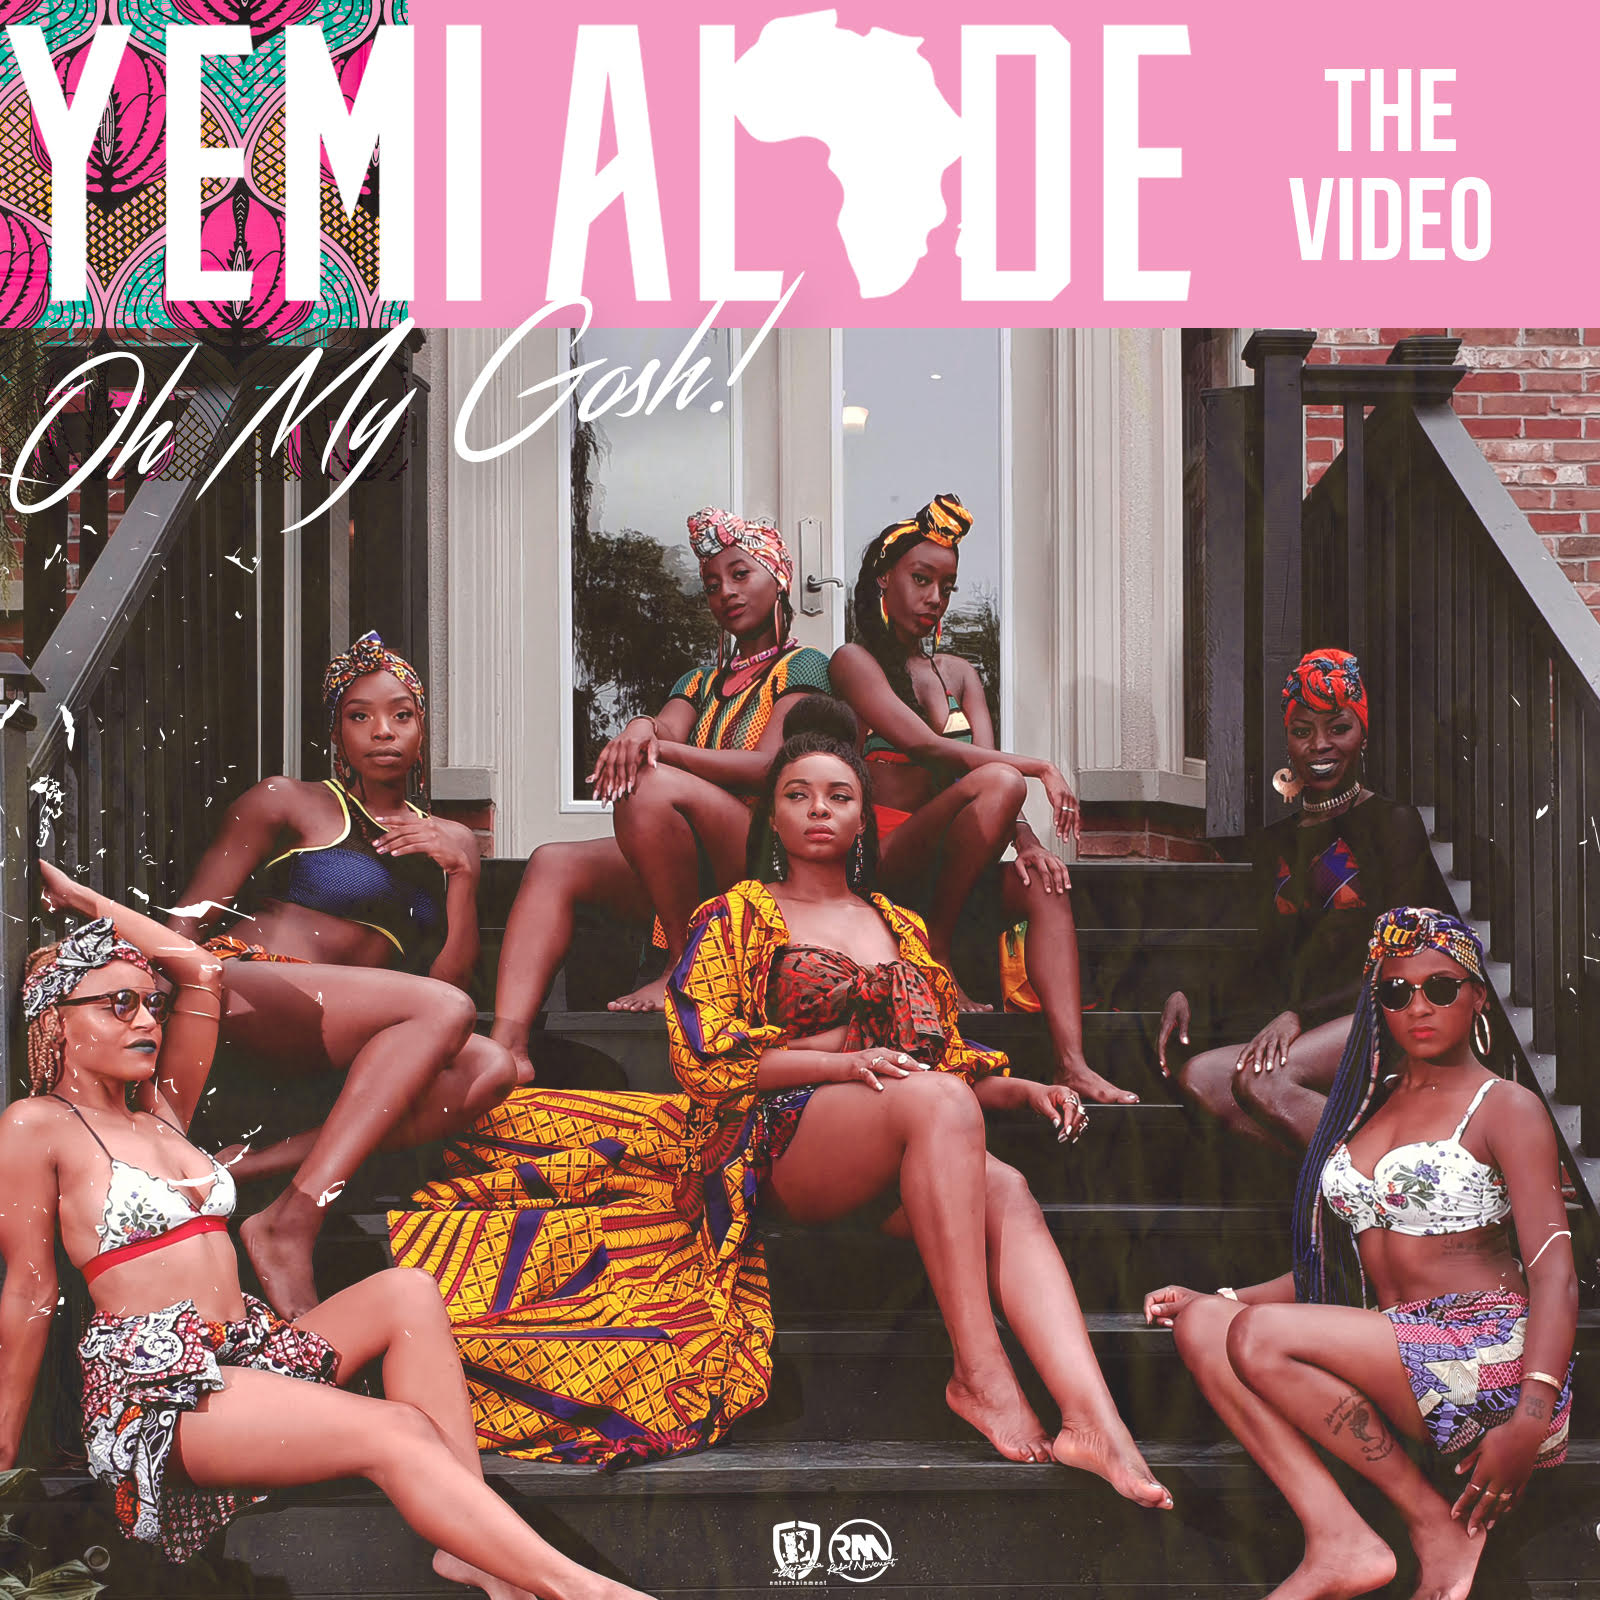 9E02827E BFCD 4FCA 8526 E926A957DE01 - Yemi Alade – Oh My Gosh [Music Video]